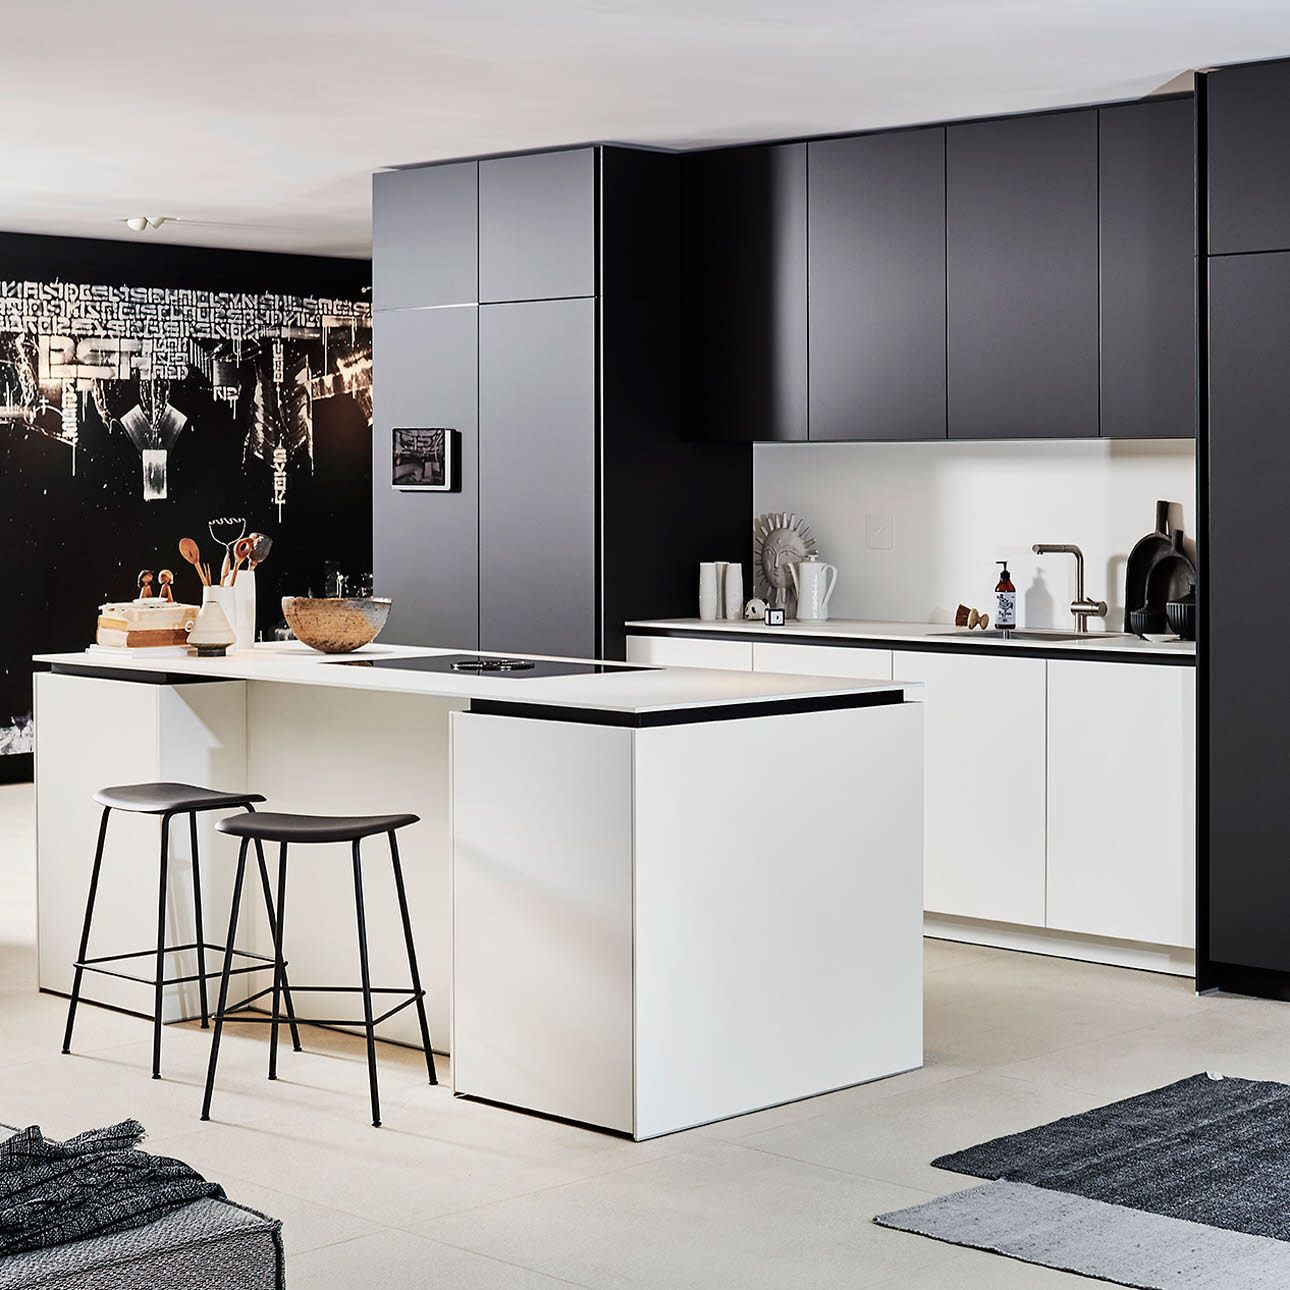 +SEGMENTO Y White kitchen design, Kitchen collection